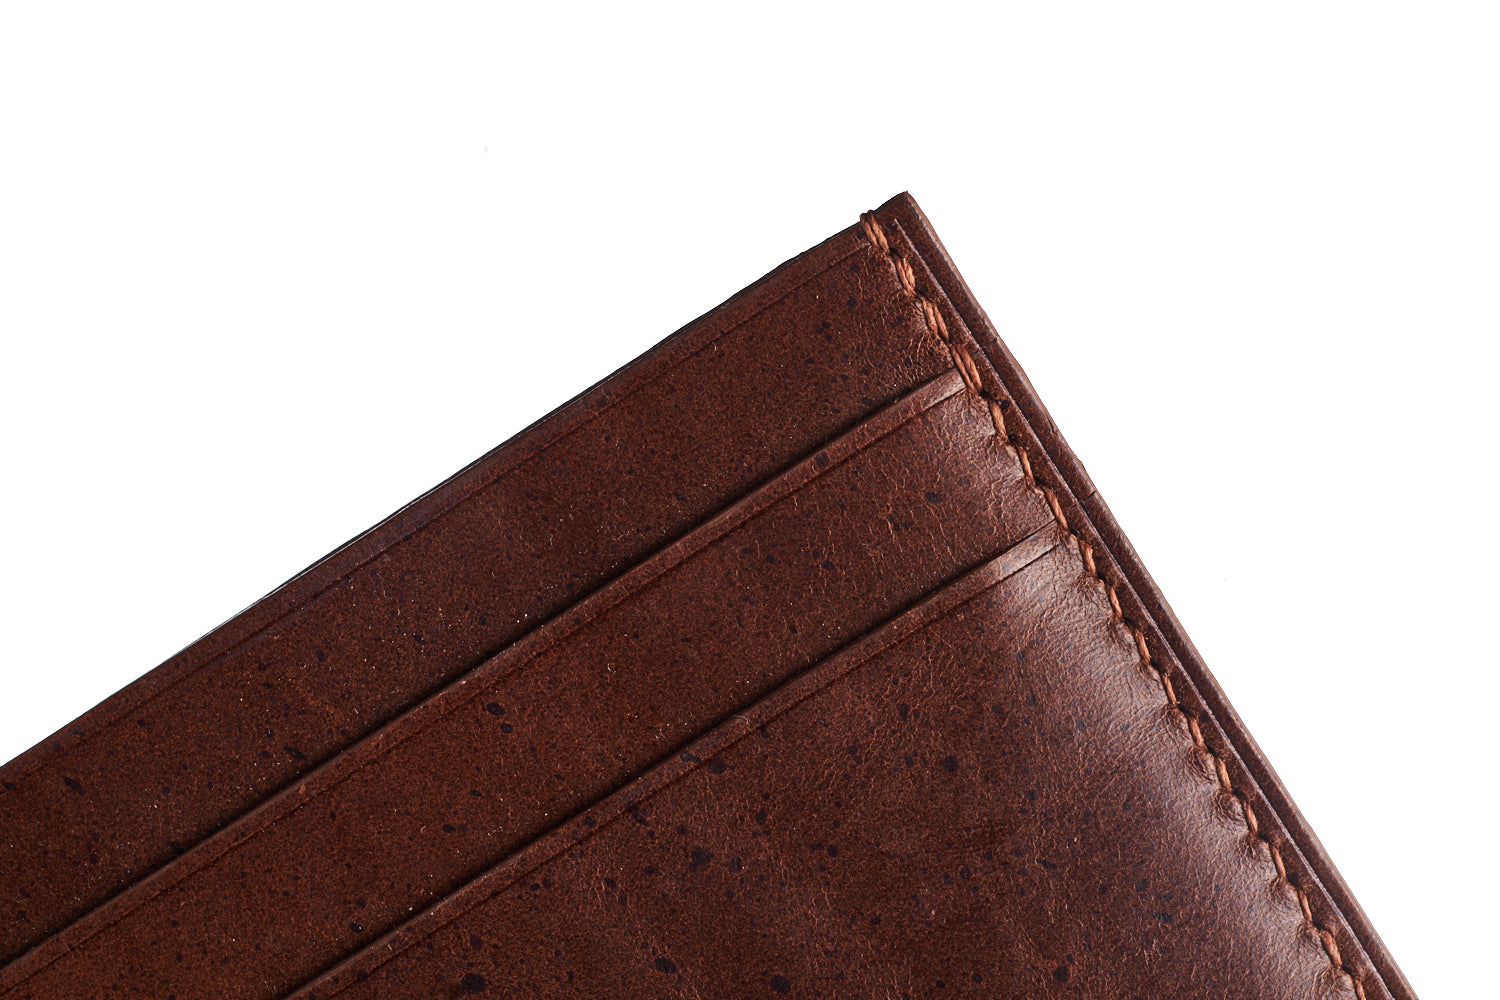 Dark Brown Buttero Slim Card Case - David Lane Design